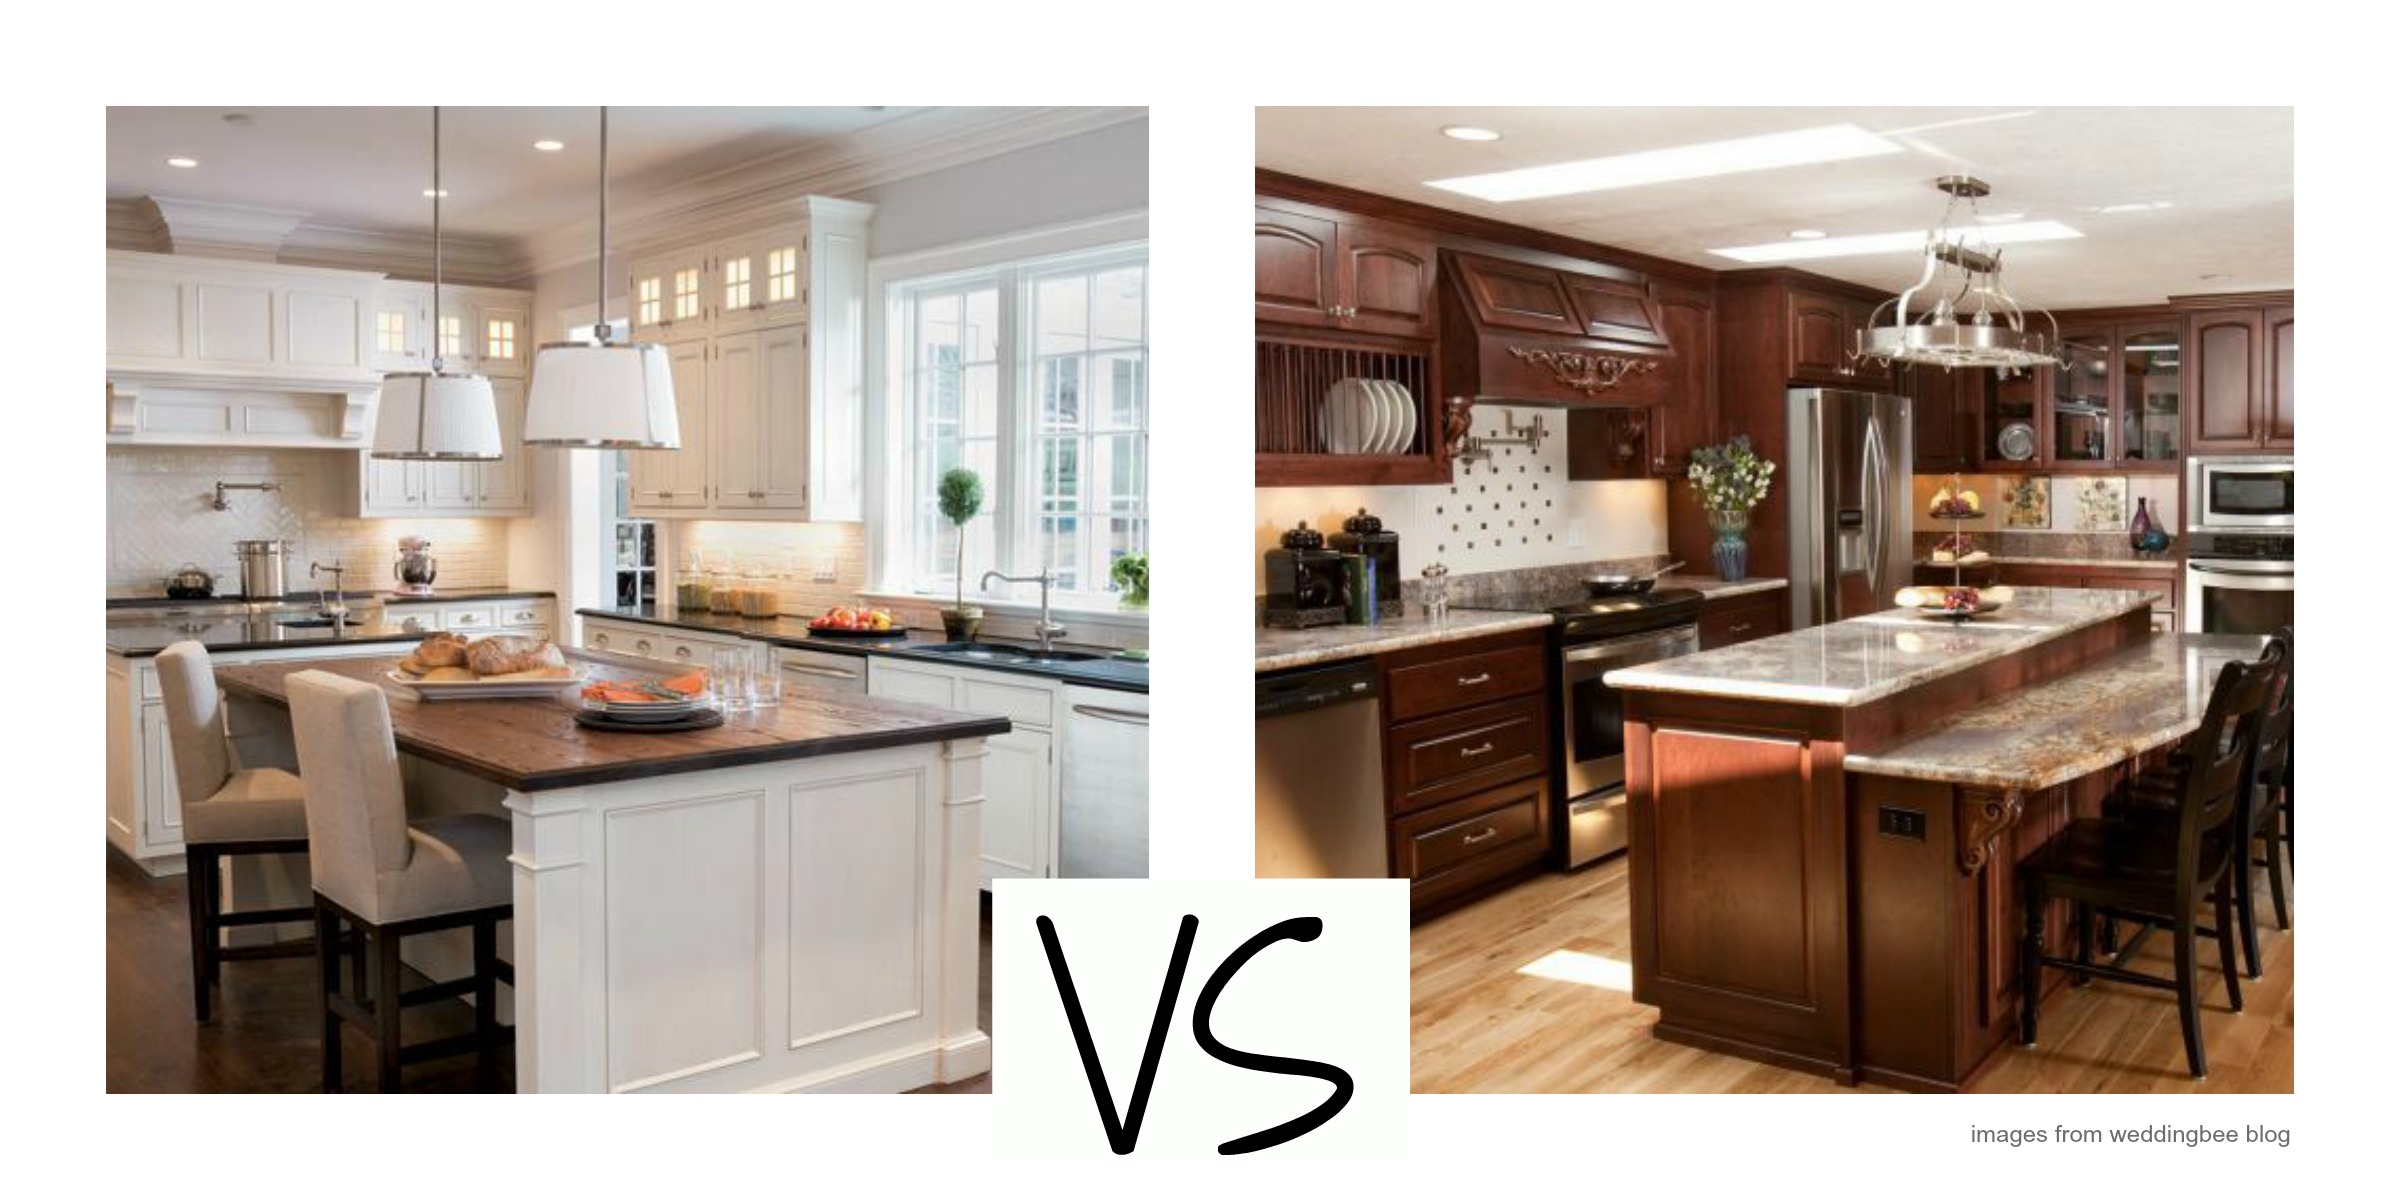 White vs Wood Kitchen Cabinets by Pamela Sandall, Pamela Sandall